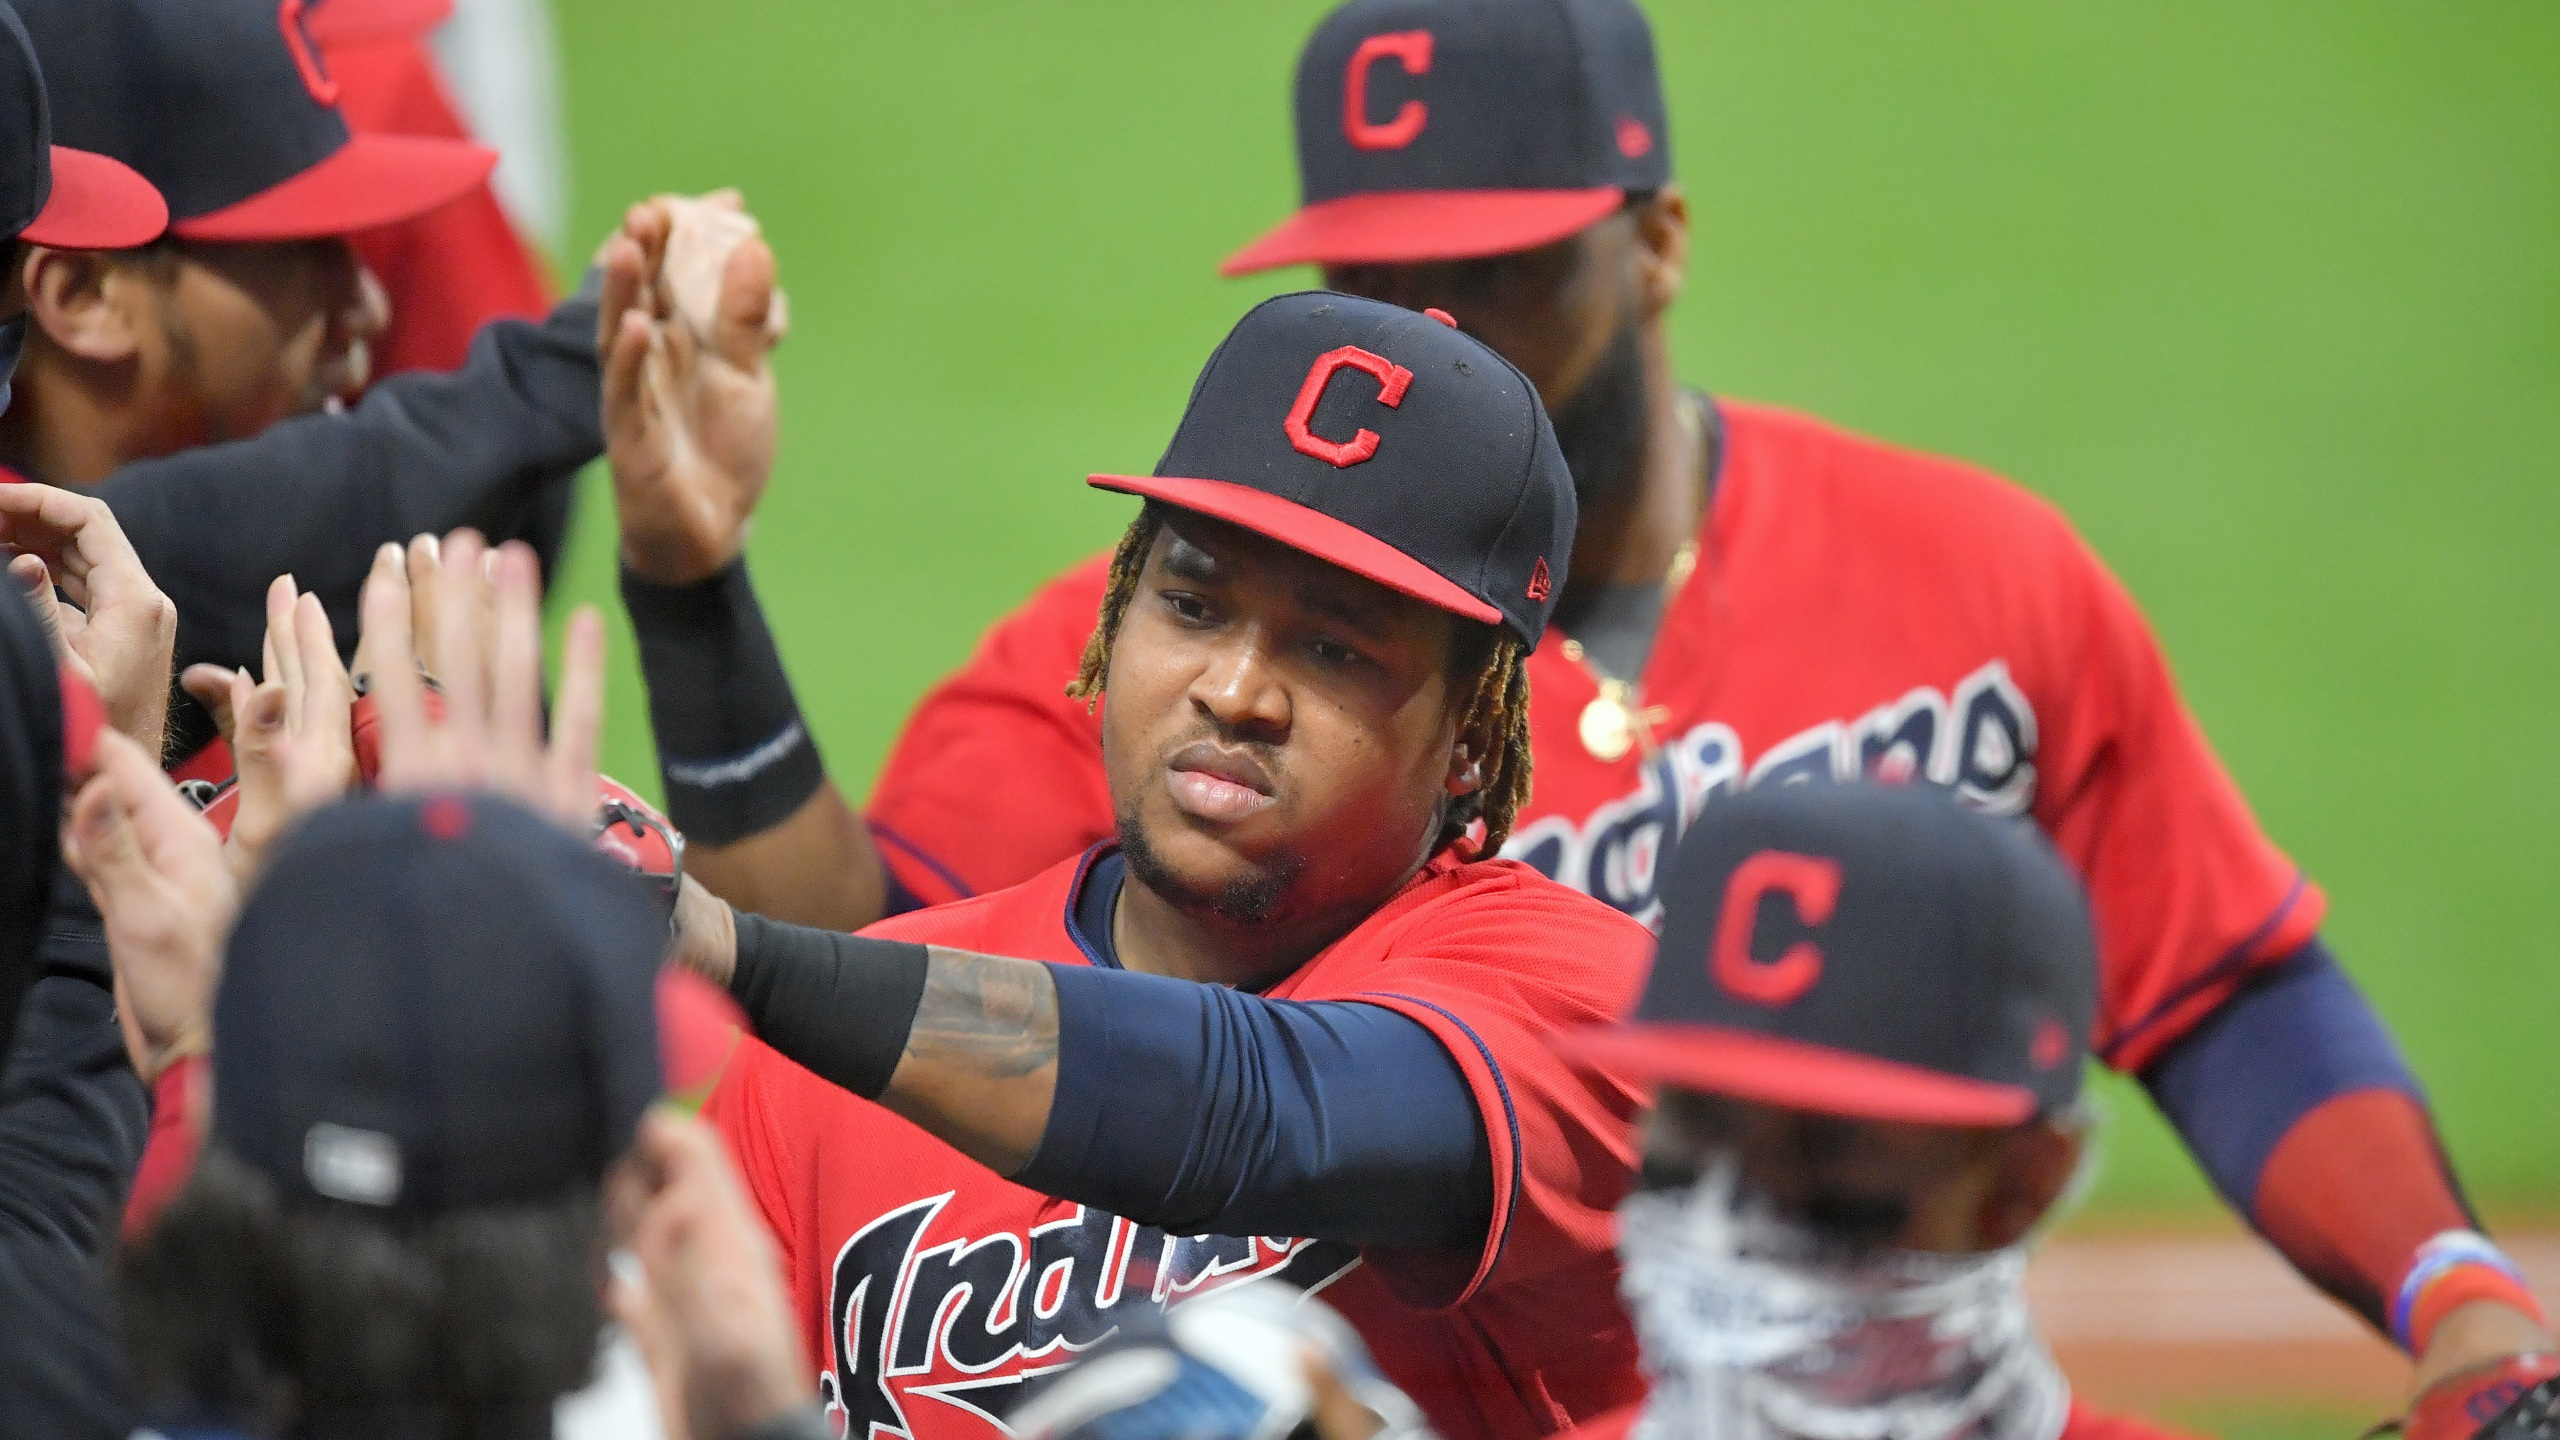 Jose Ramirez #11 of the Cleveland Indians celebrates